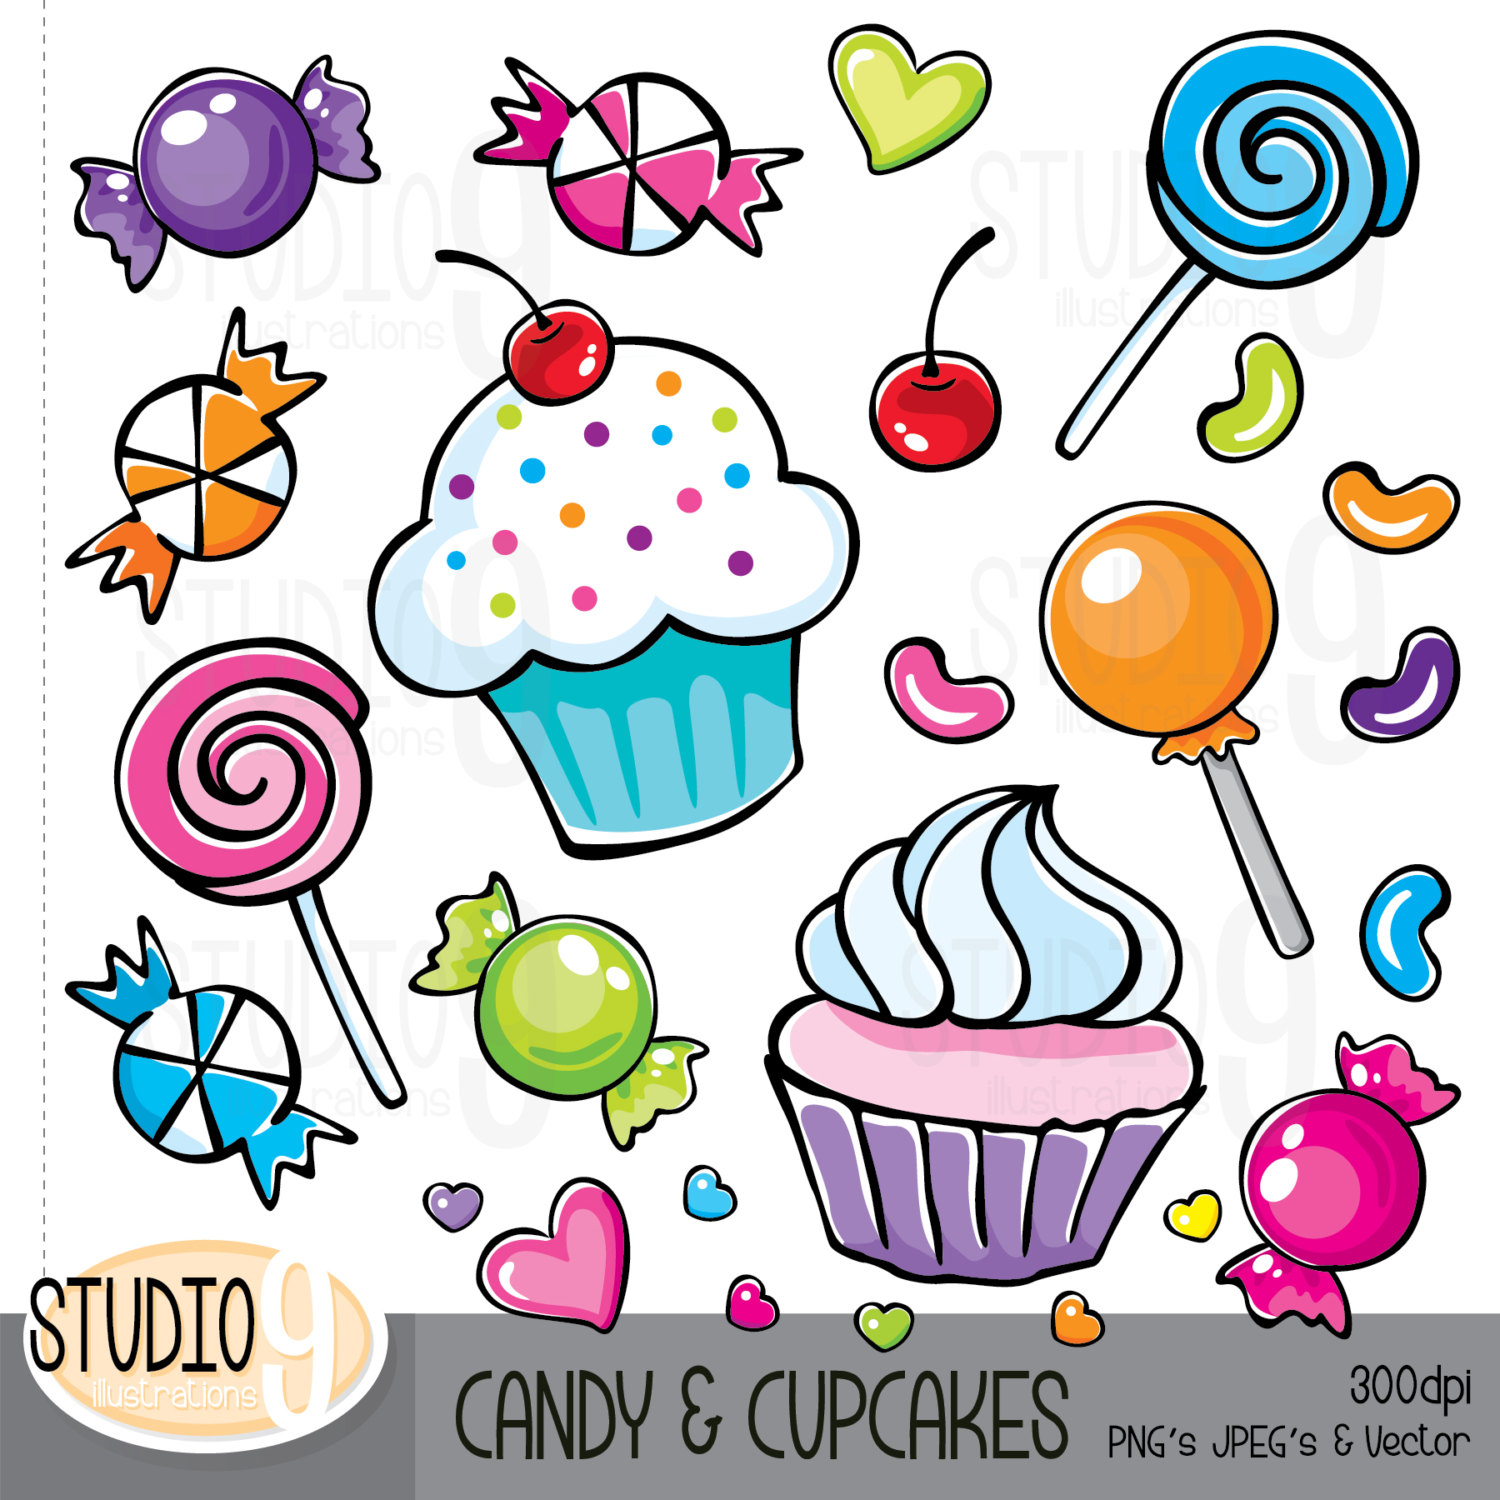 CANDY & CUPCAKES Clip Art: Candy Clipart by STUDIO9illustrations.